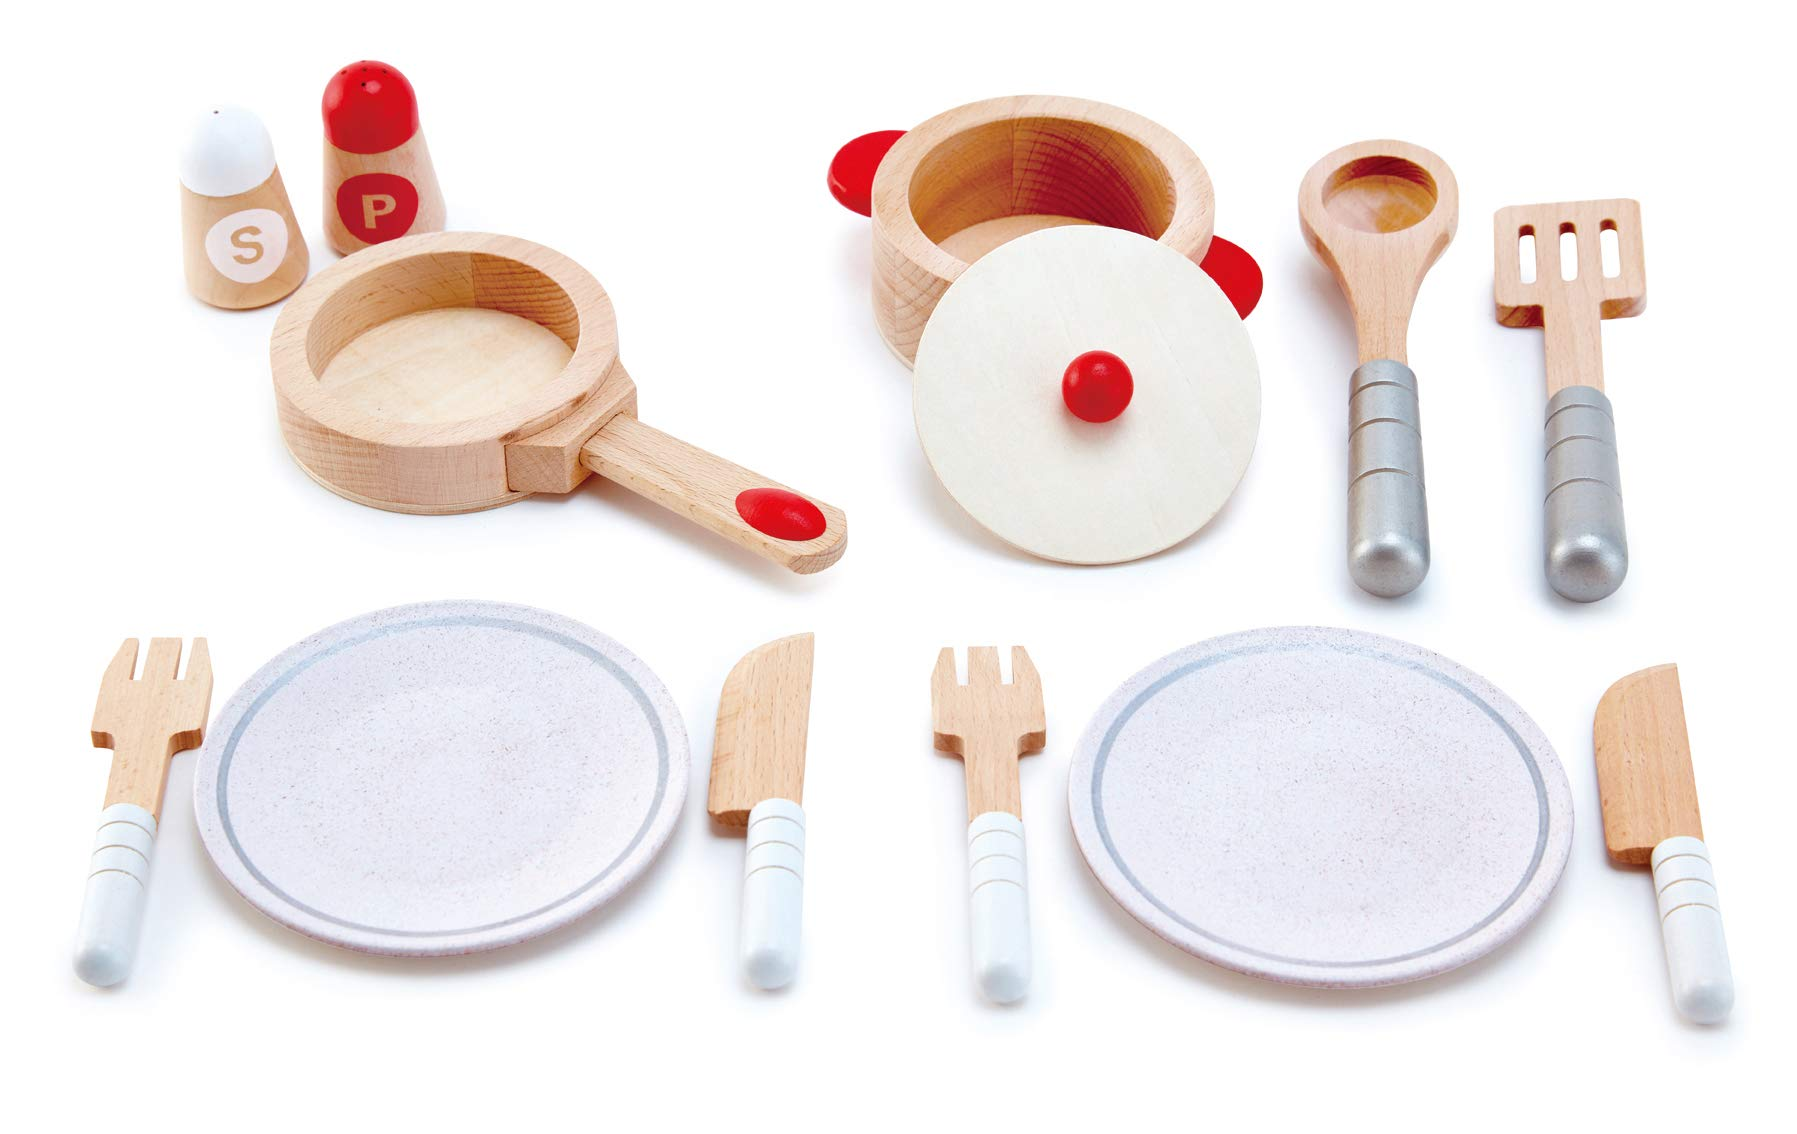 Hape Cook & Serve Set | 13 Piece Wooden Pretend Play Cooking Set with Accessories by Hape